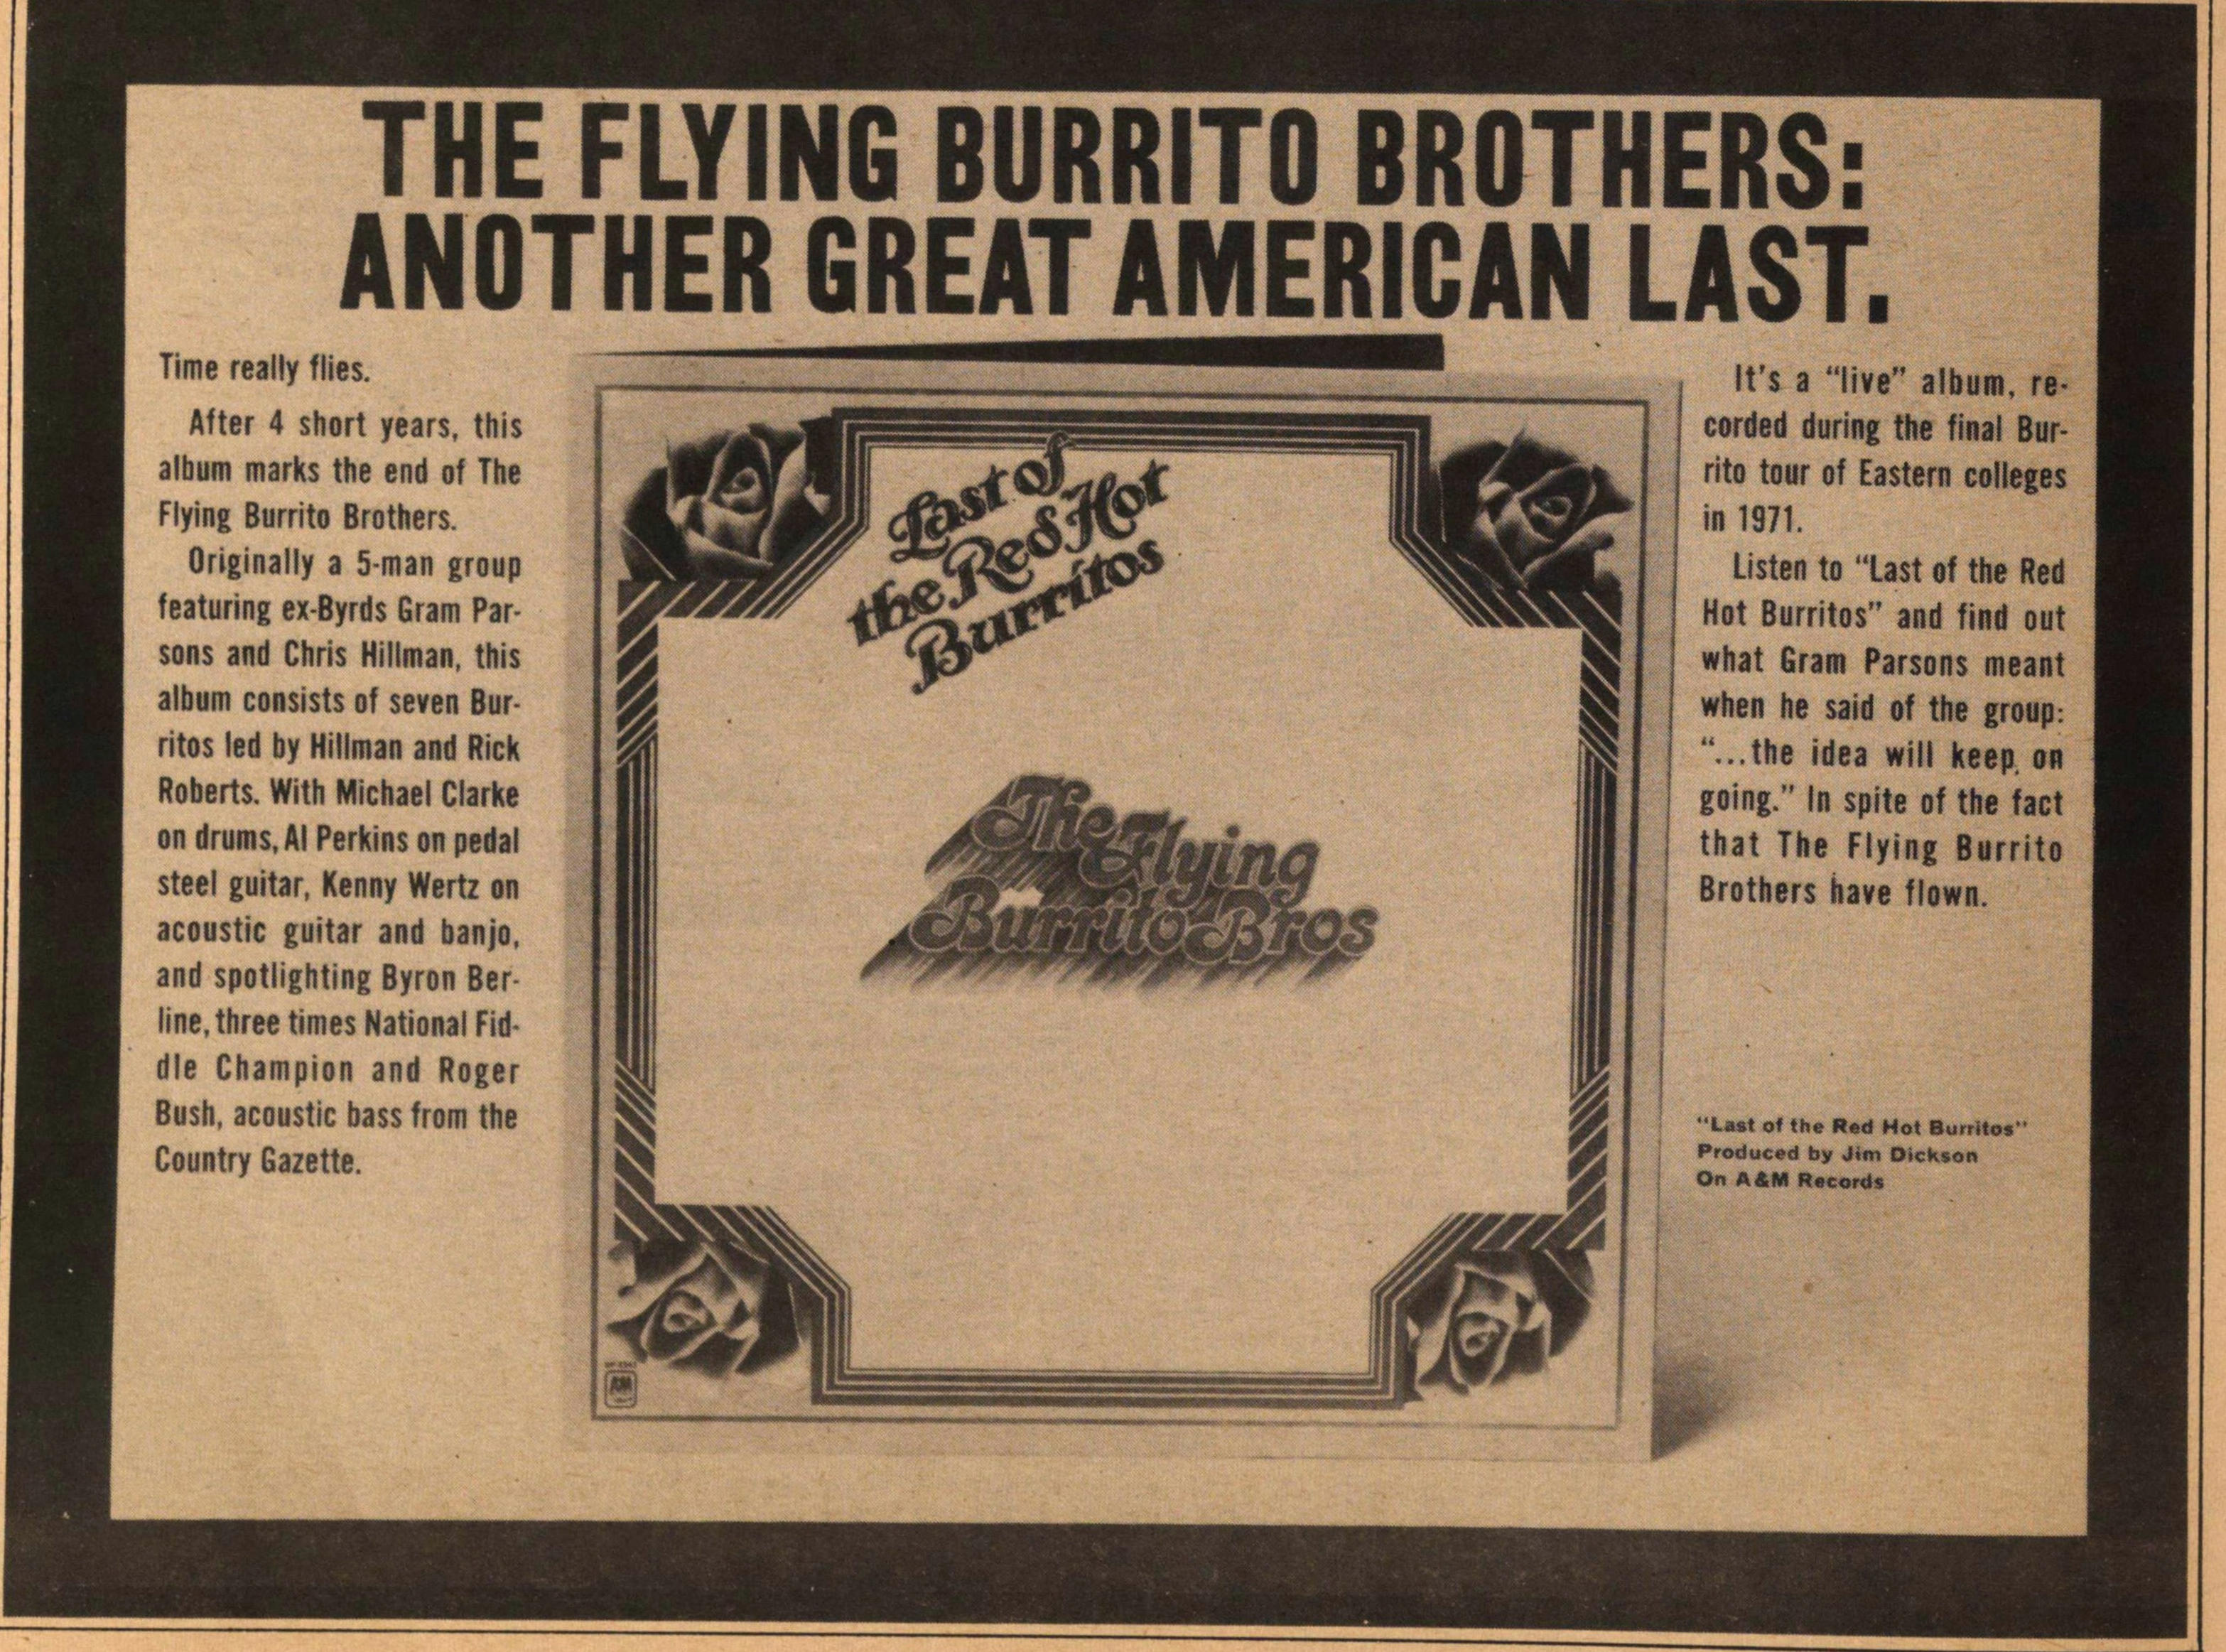 The Flying Burrito Brothers: Another Great American Last image